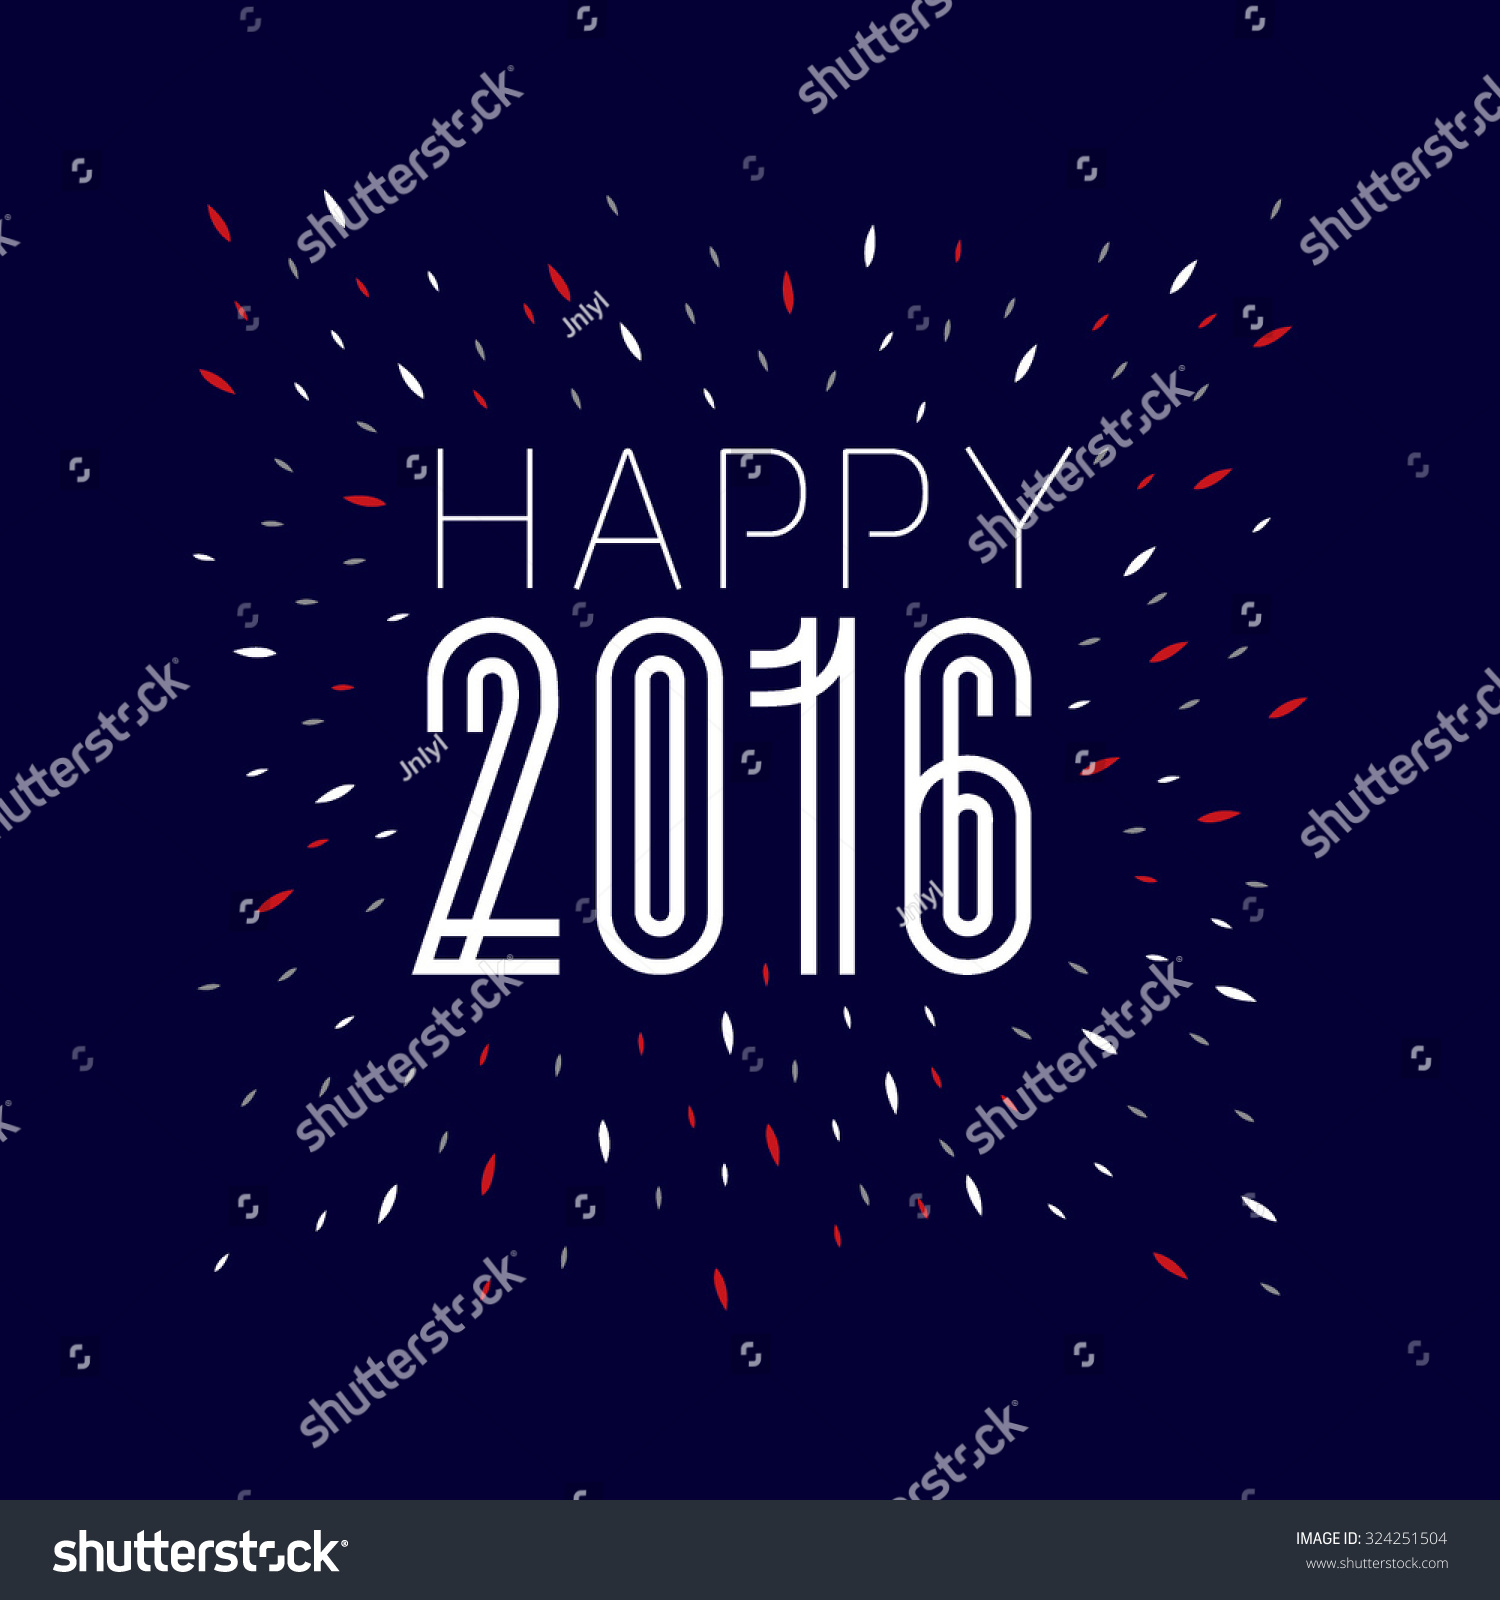 happy new year greetings with typography design celebrations wallpaper festive background with text